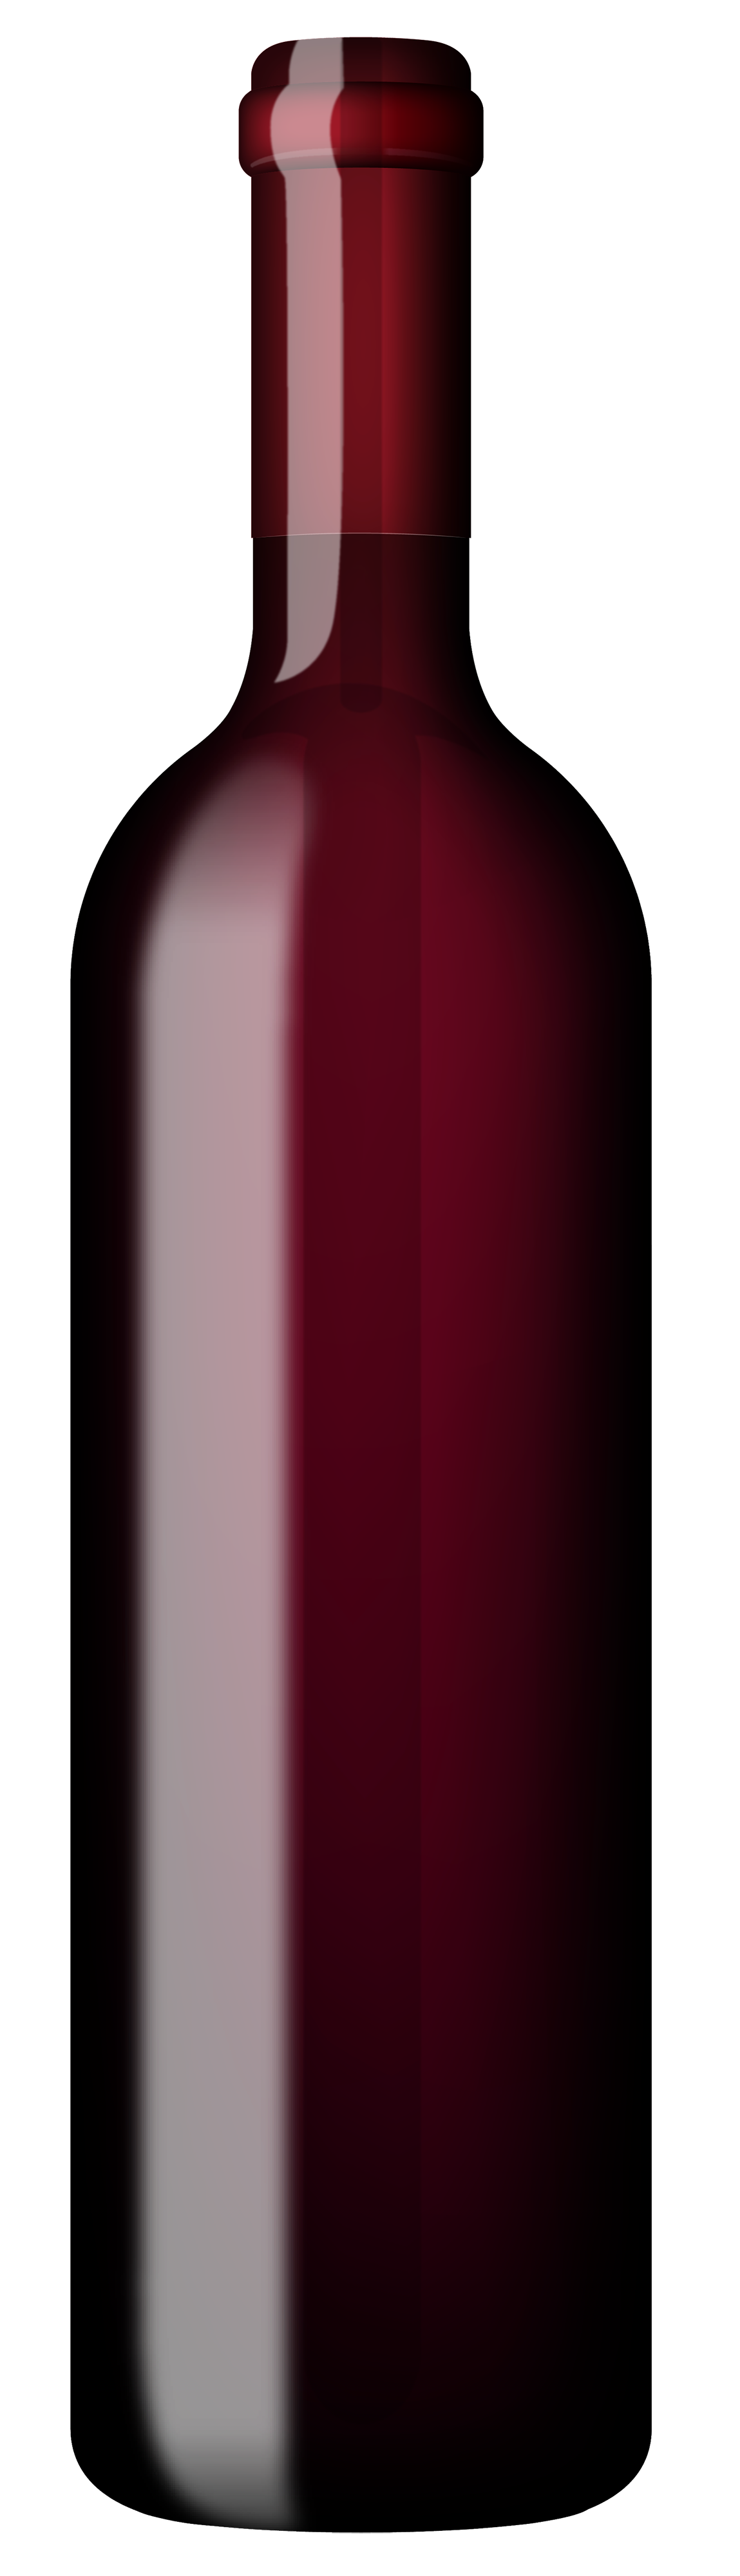 Wine Bottle Clipart Clipground